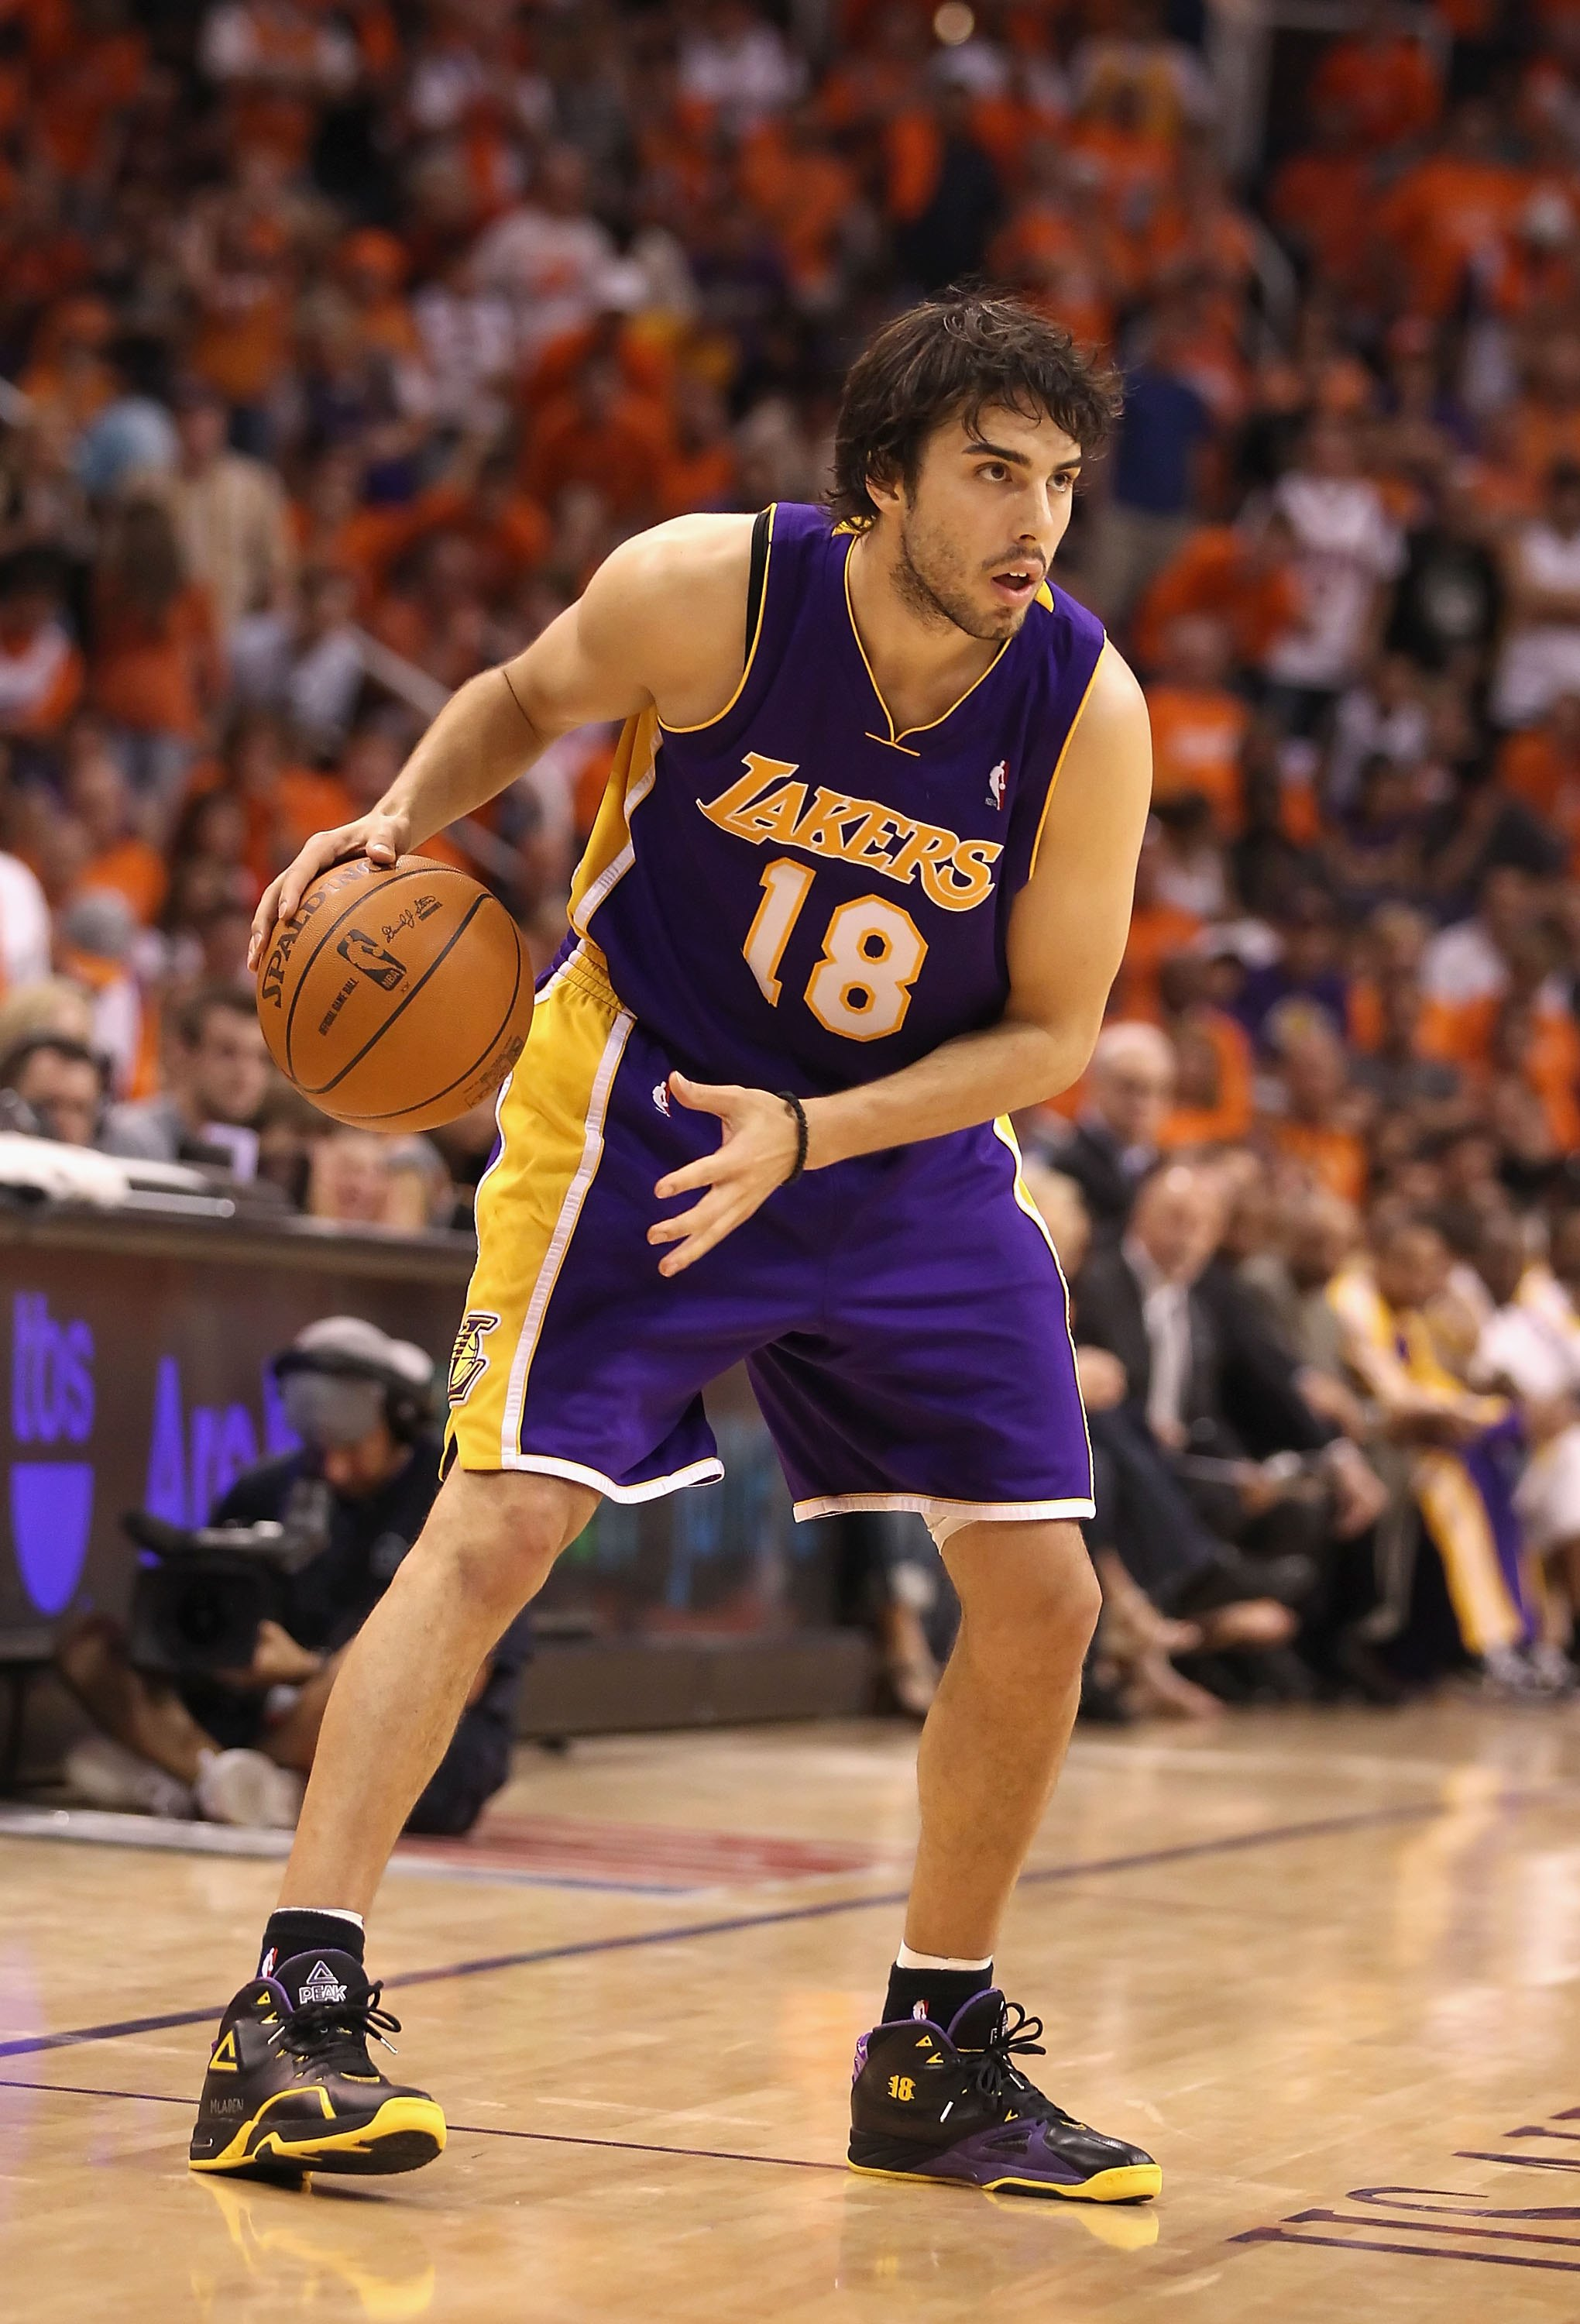 PHOENIX - MAY 29:  Sasha Vujacic #18 of the Los Angeles Lakers handles the ball during Game Six of the Western Conference finals of the 2010 NBA Playoffs against the Phoenix Suns at US Airways Center on May 29, 2010 in Phoenix, Arizona. The Lakers defeate